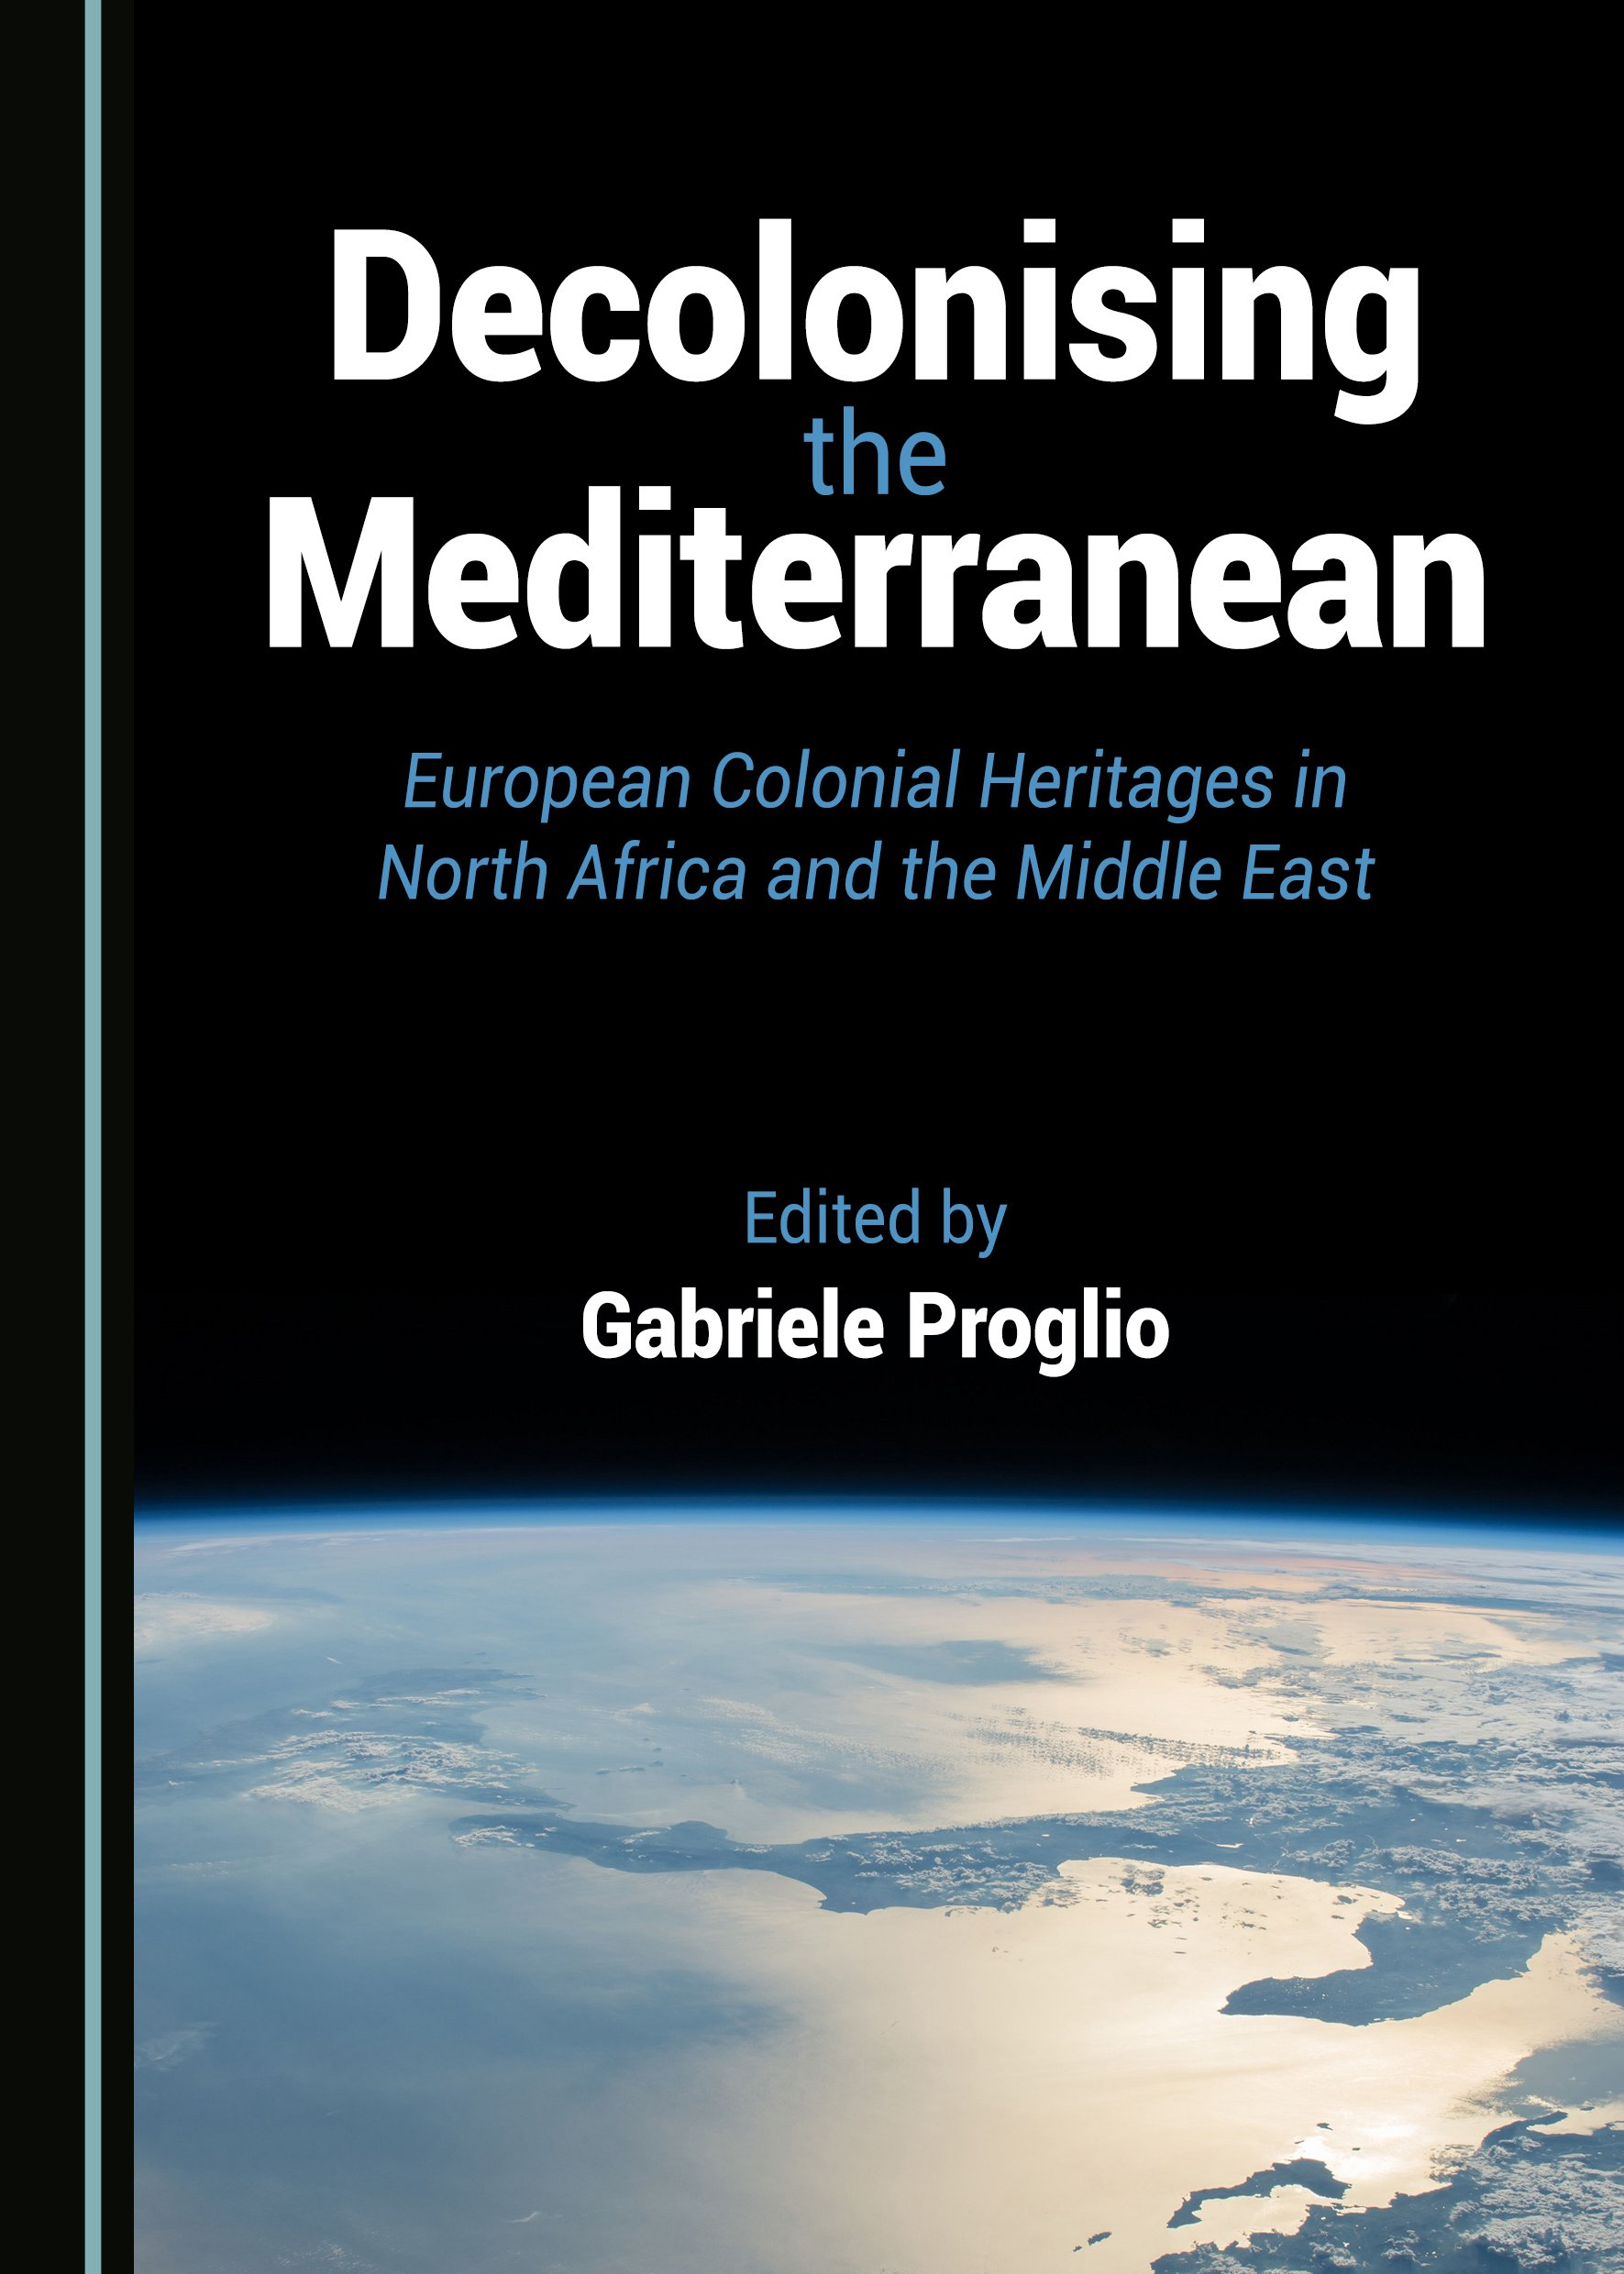 Decolonising the Mediterranean: European Colonial Heritages in North Africa and the Middle East